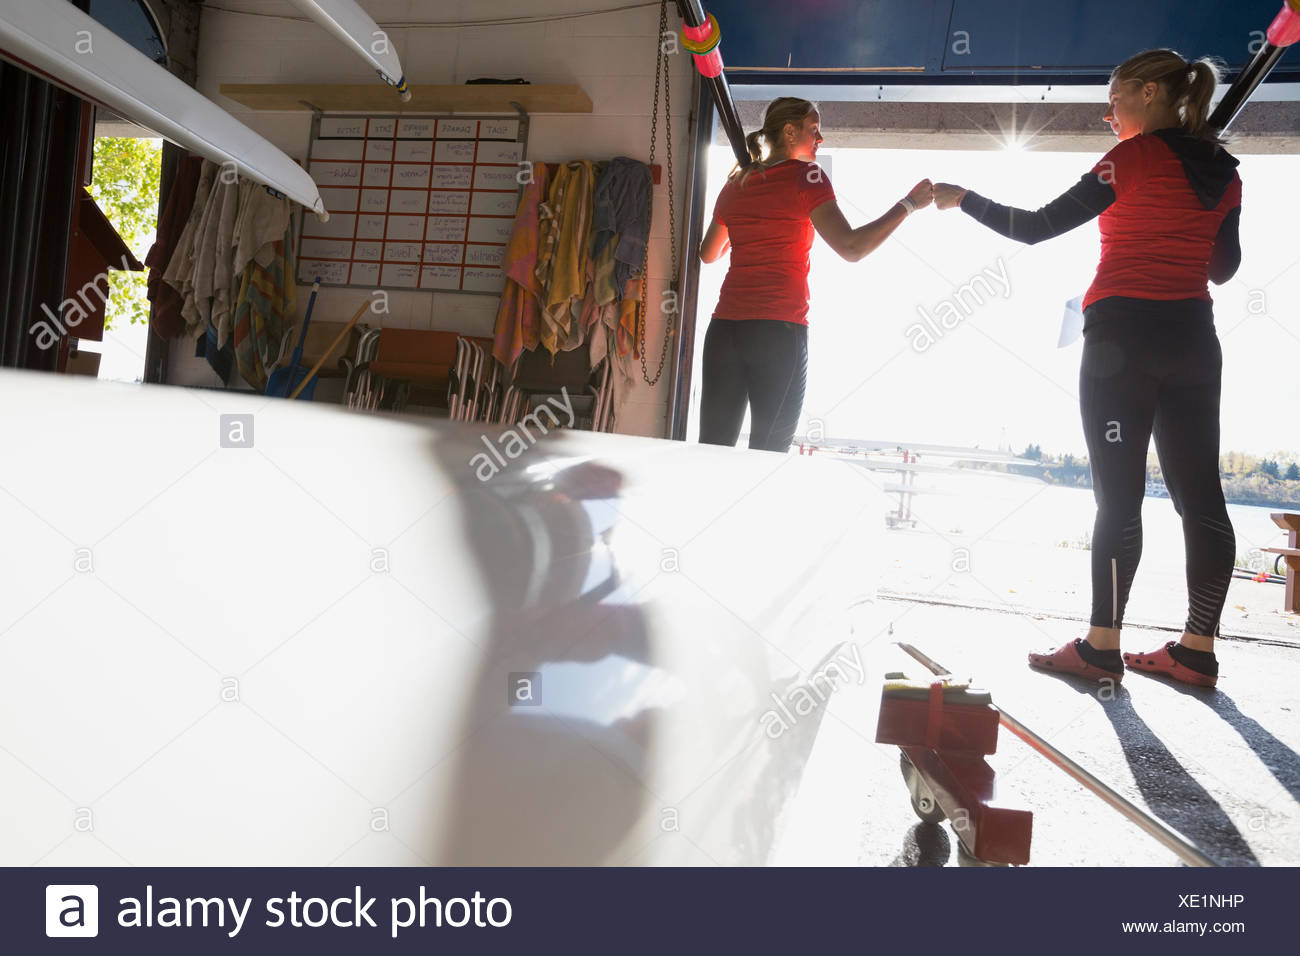 Rowers fist pumping in boathouse - Stock Image